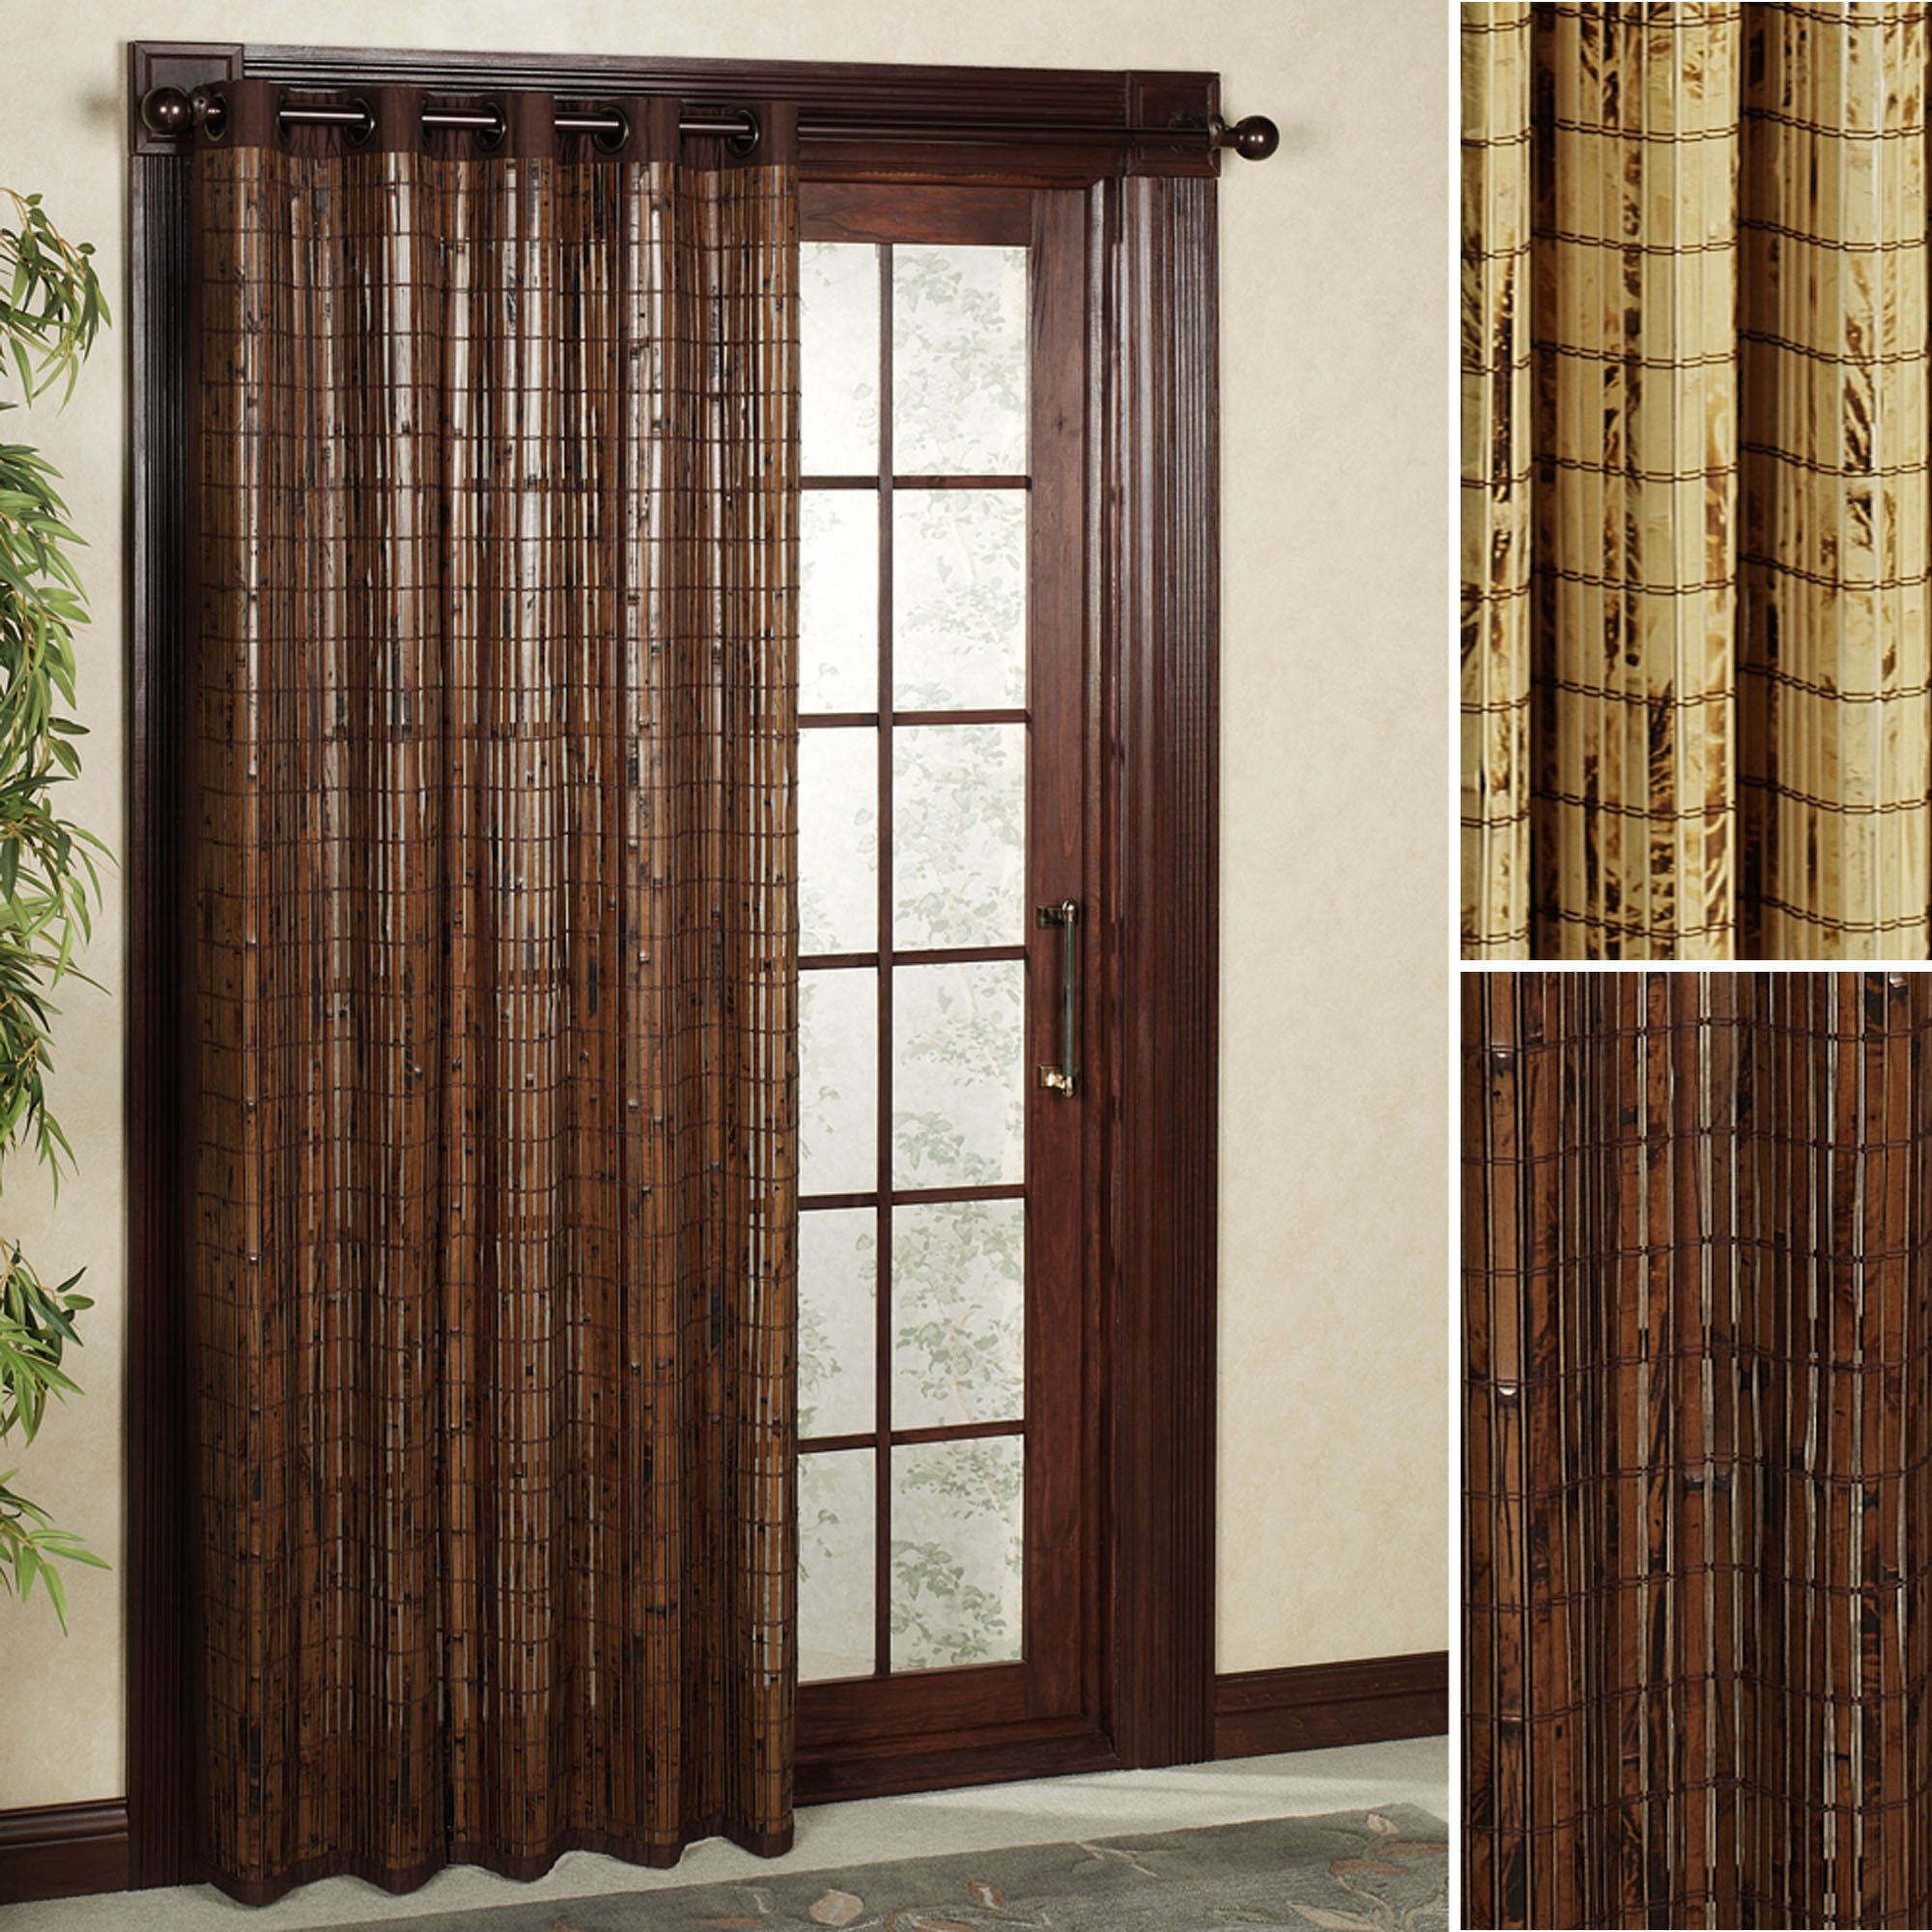 Captivating Pella Products Picturesque Glass Grommet Curtains With Pella Designer  Series Patio Door Bamboo Patio Panels Interior Design Pella Proline Sliding  Patio Door ...